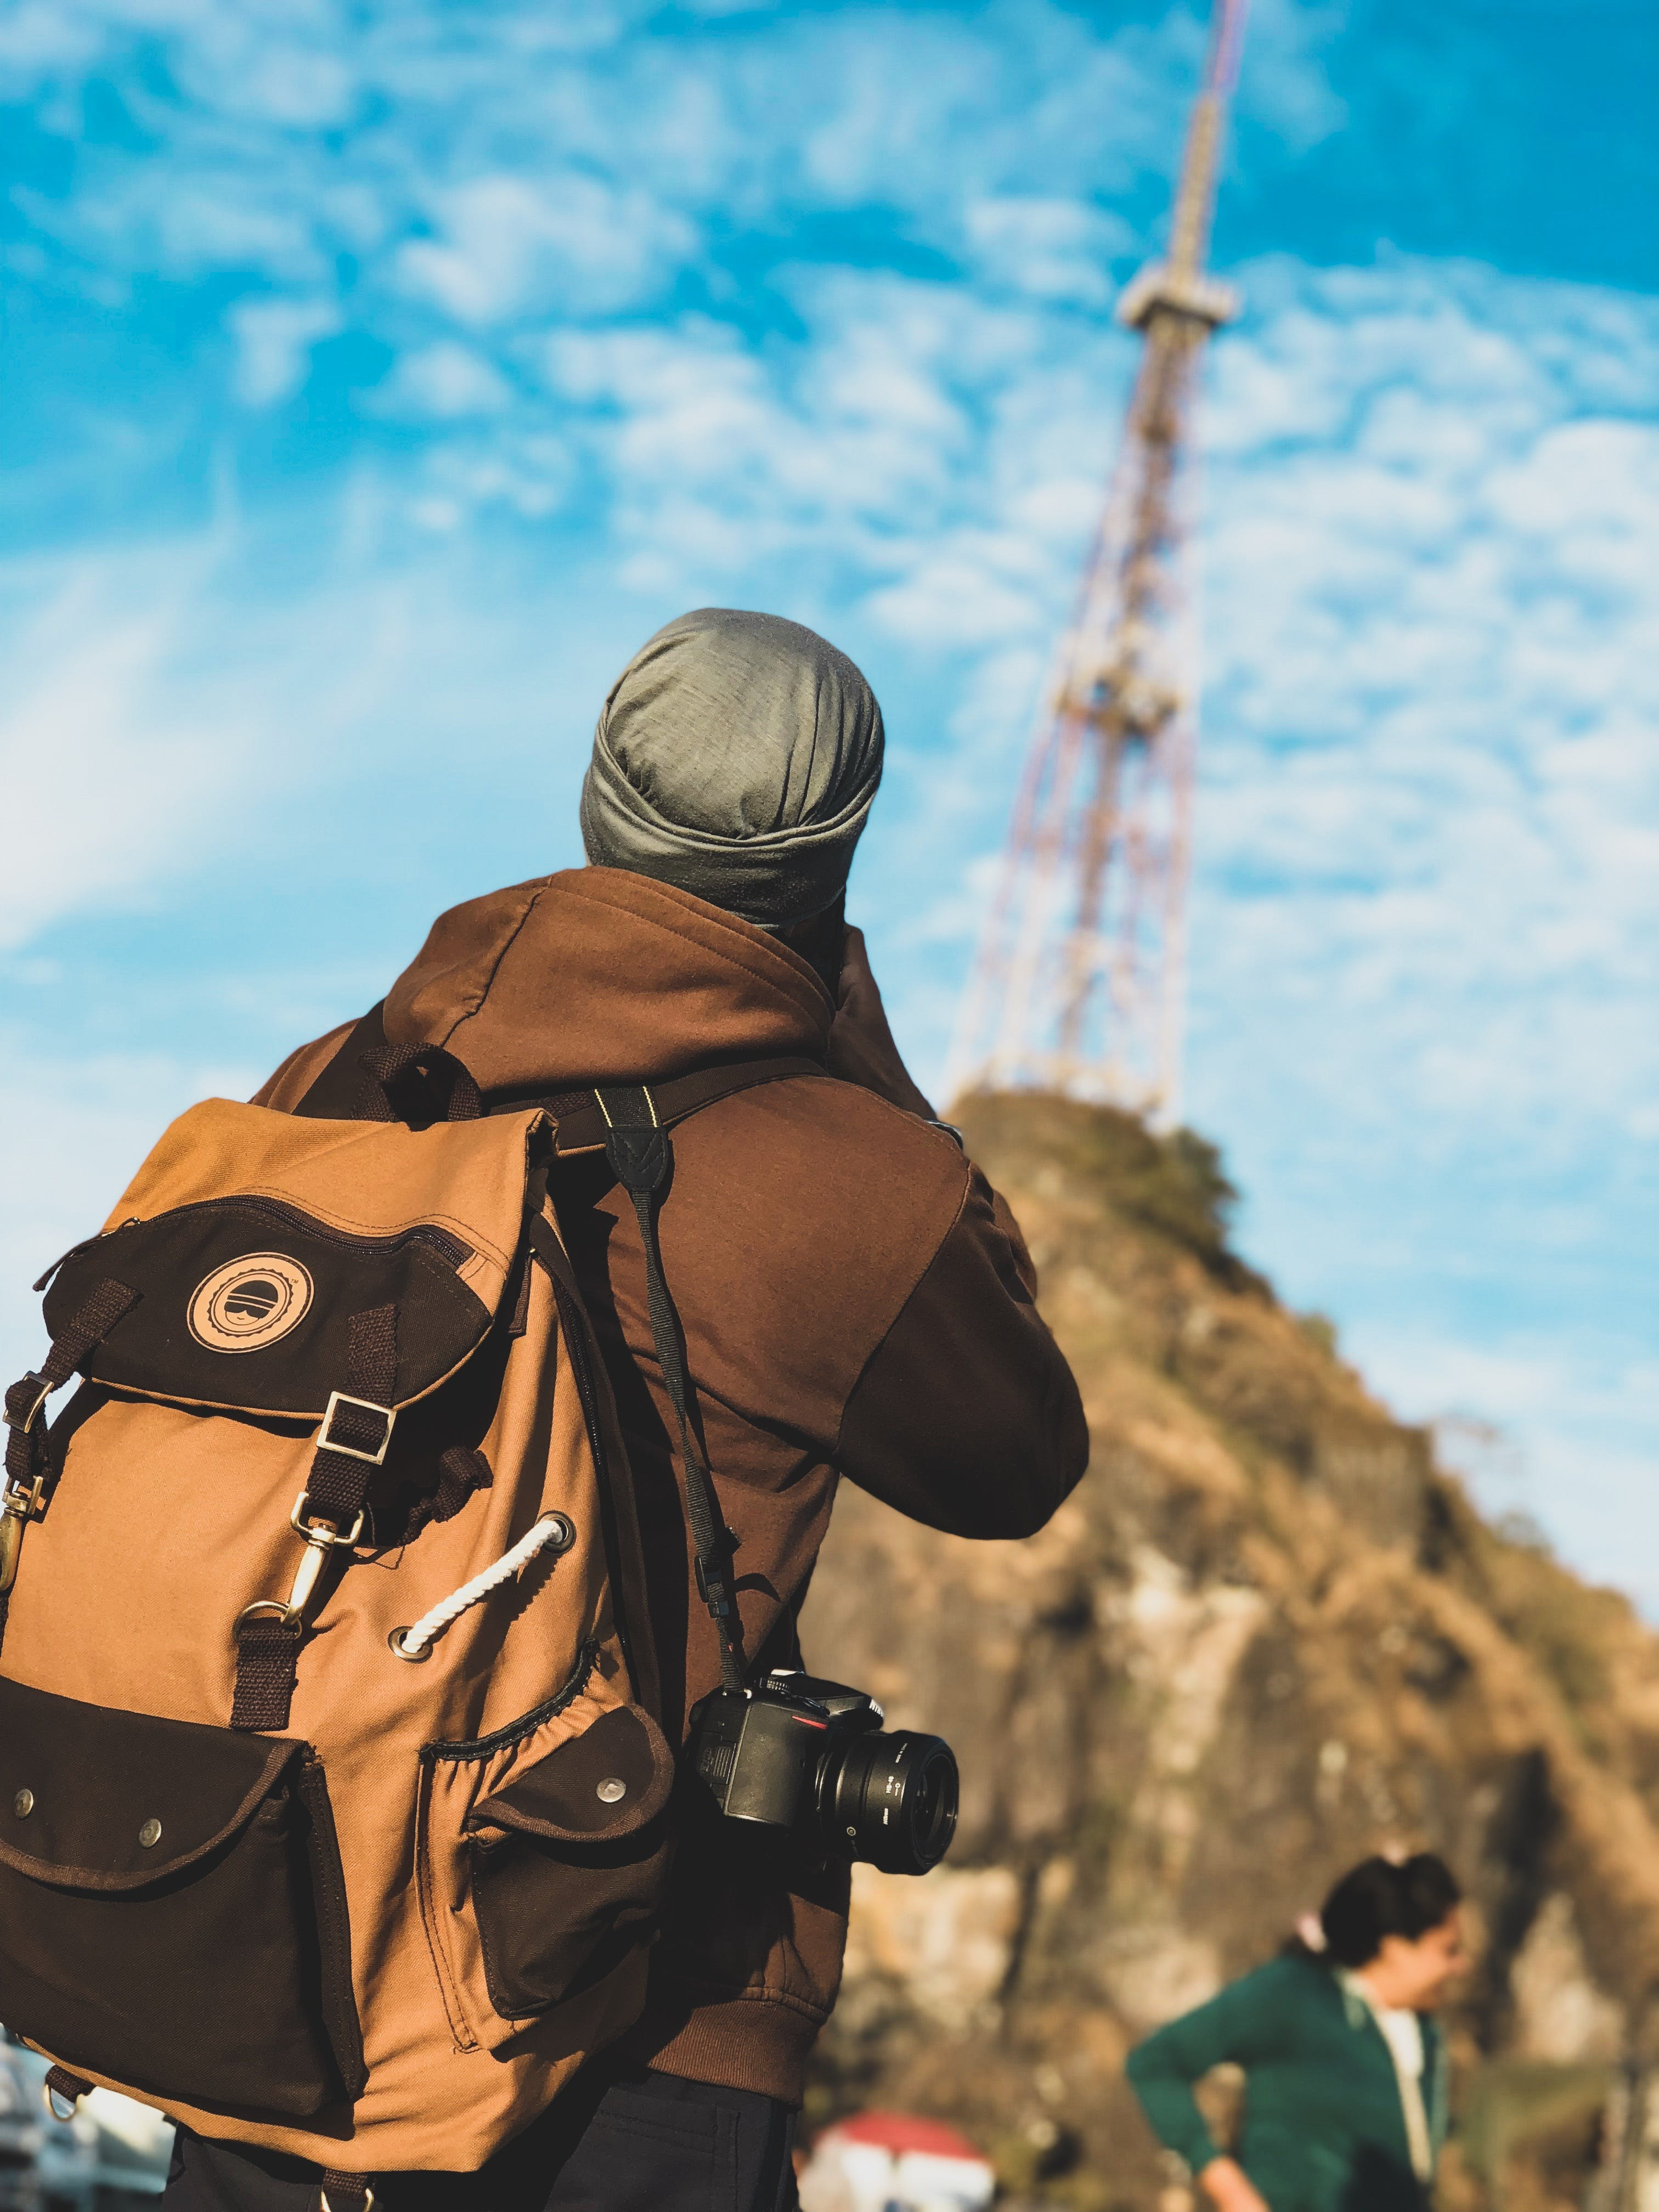 Focus Photography of Person Wearing Brown and Black Jacket With Brown and Black Backpack